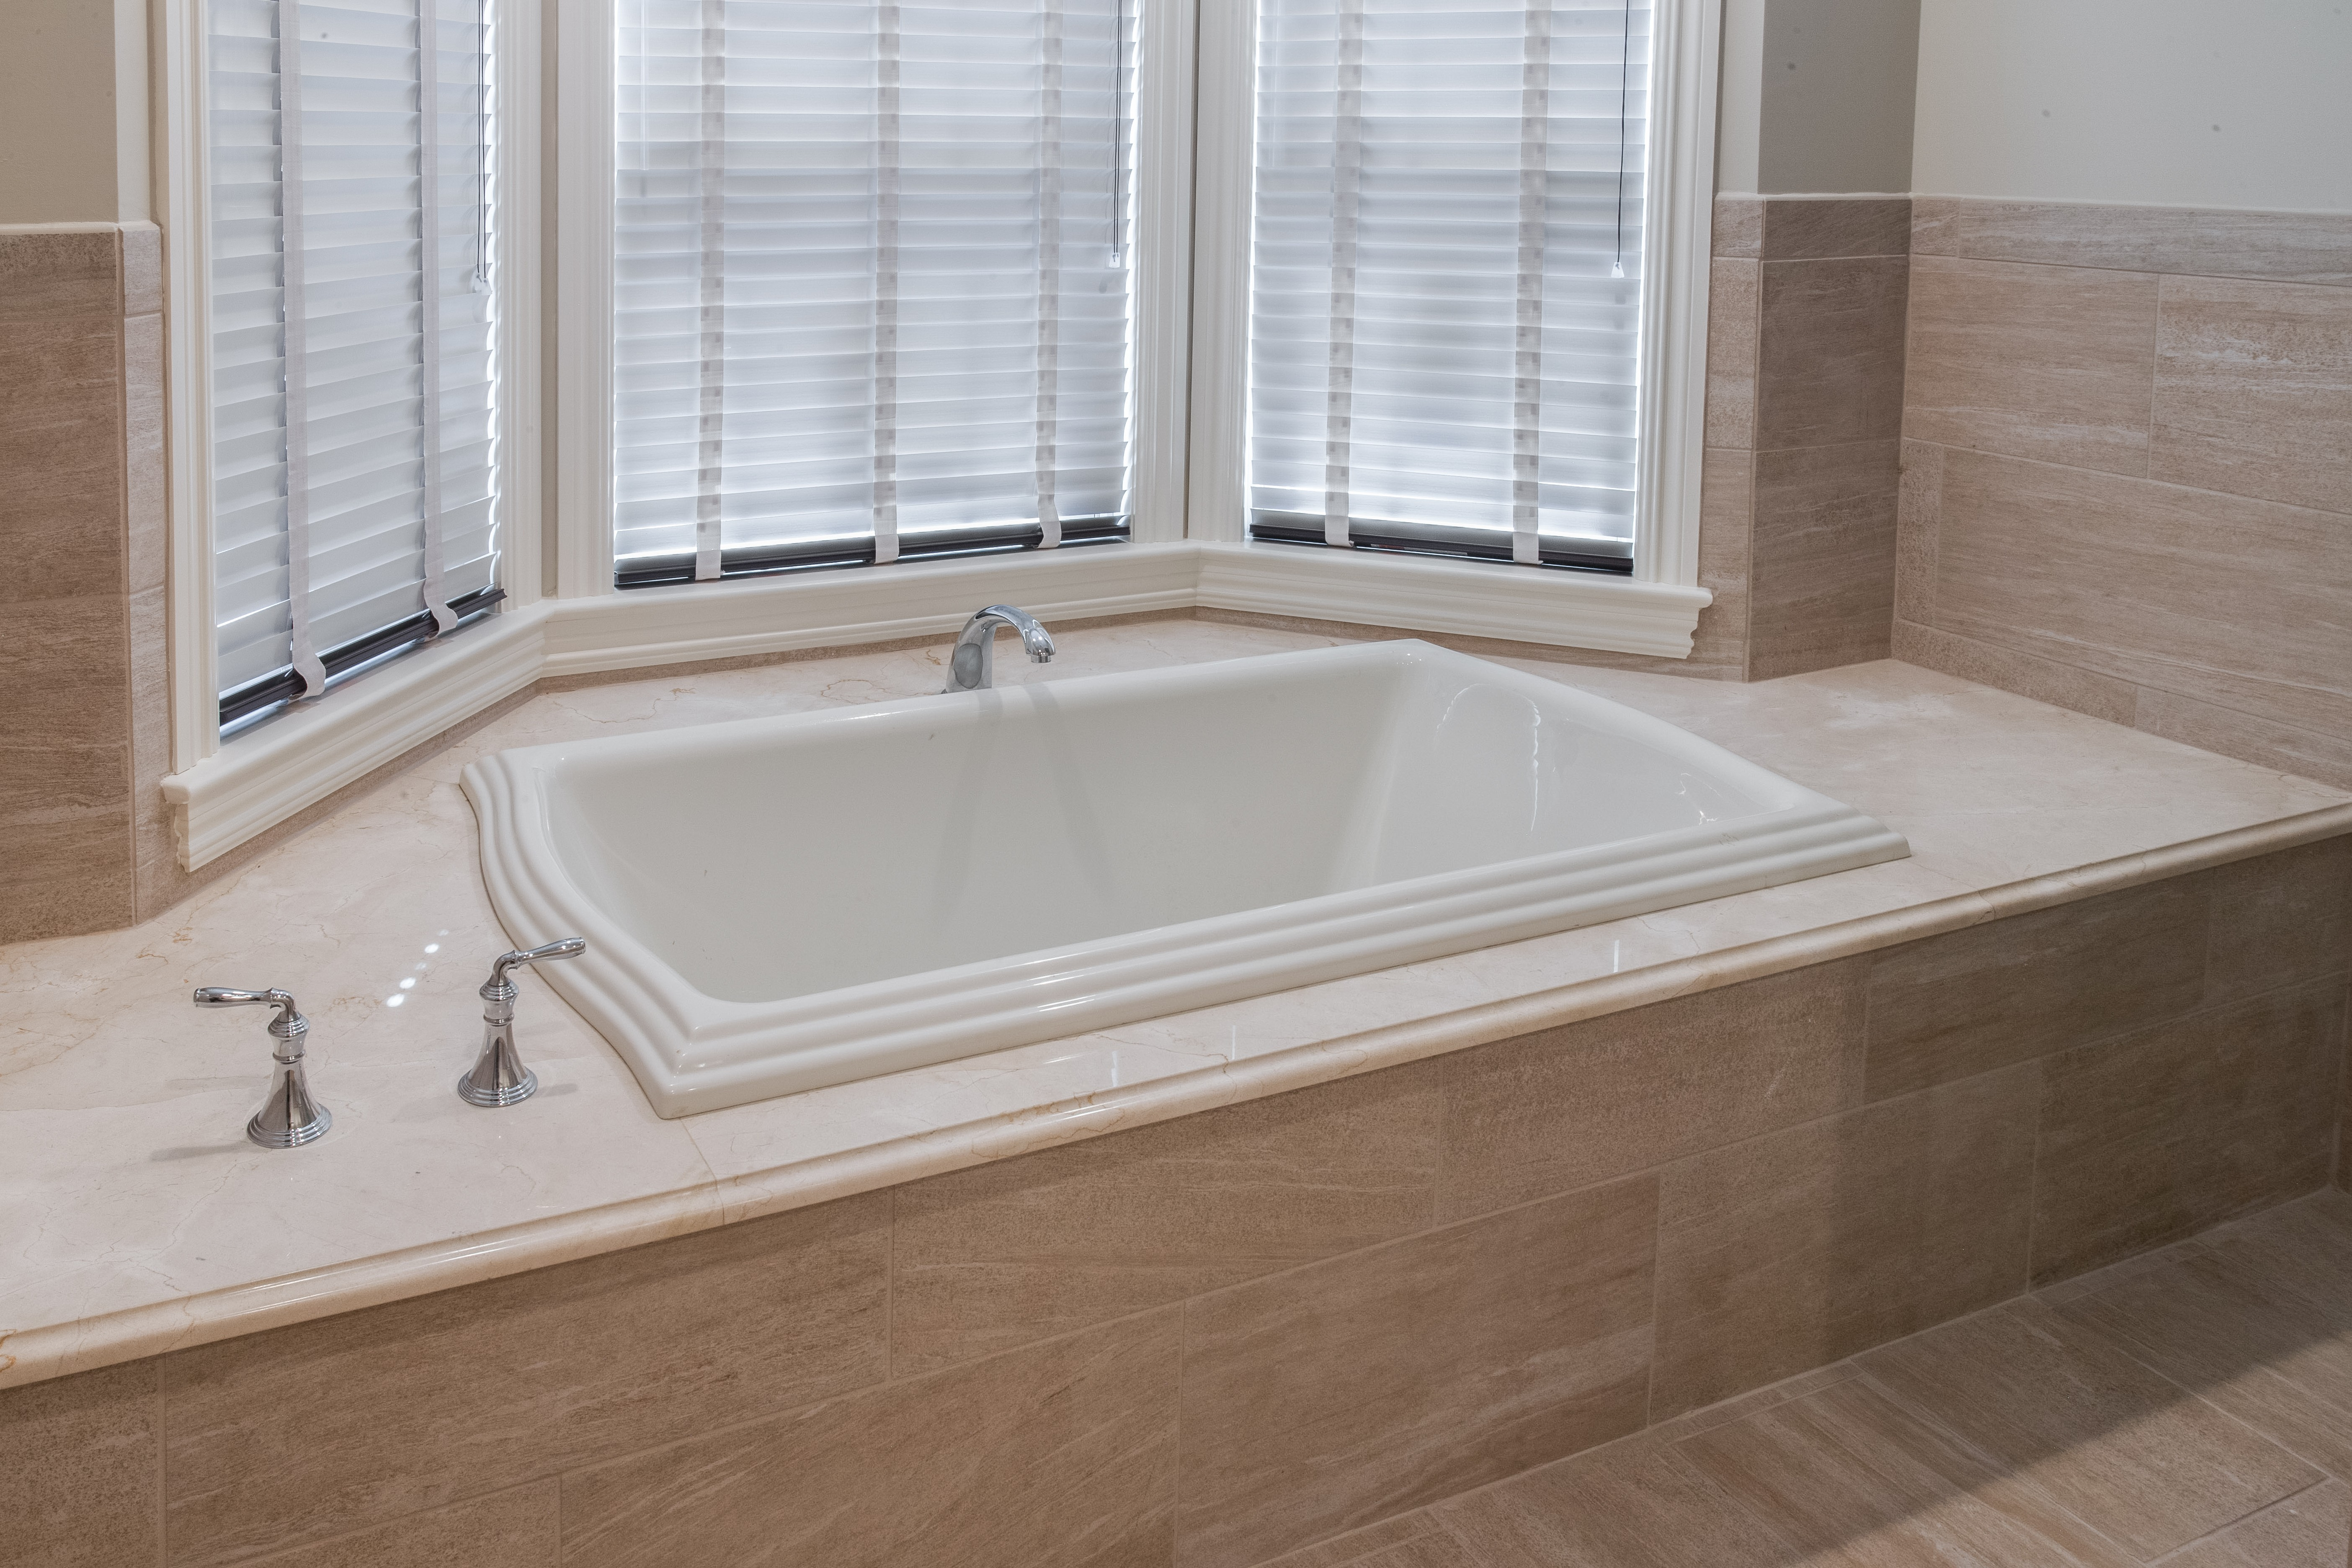 If You Are Looking For A Bright Bathroom Surround Crema Marfil Marble Is Great Choice It Beautiful Neutral Stone That Looks Terrific Paired With